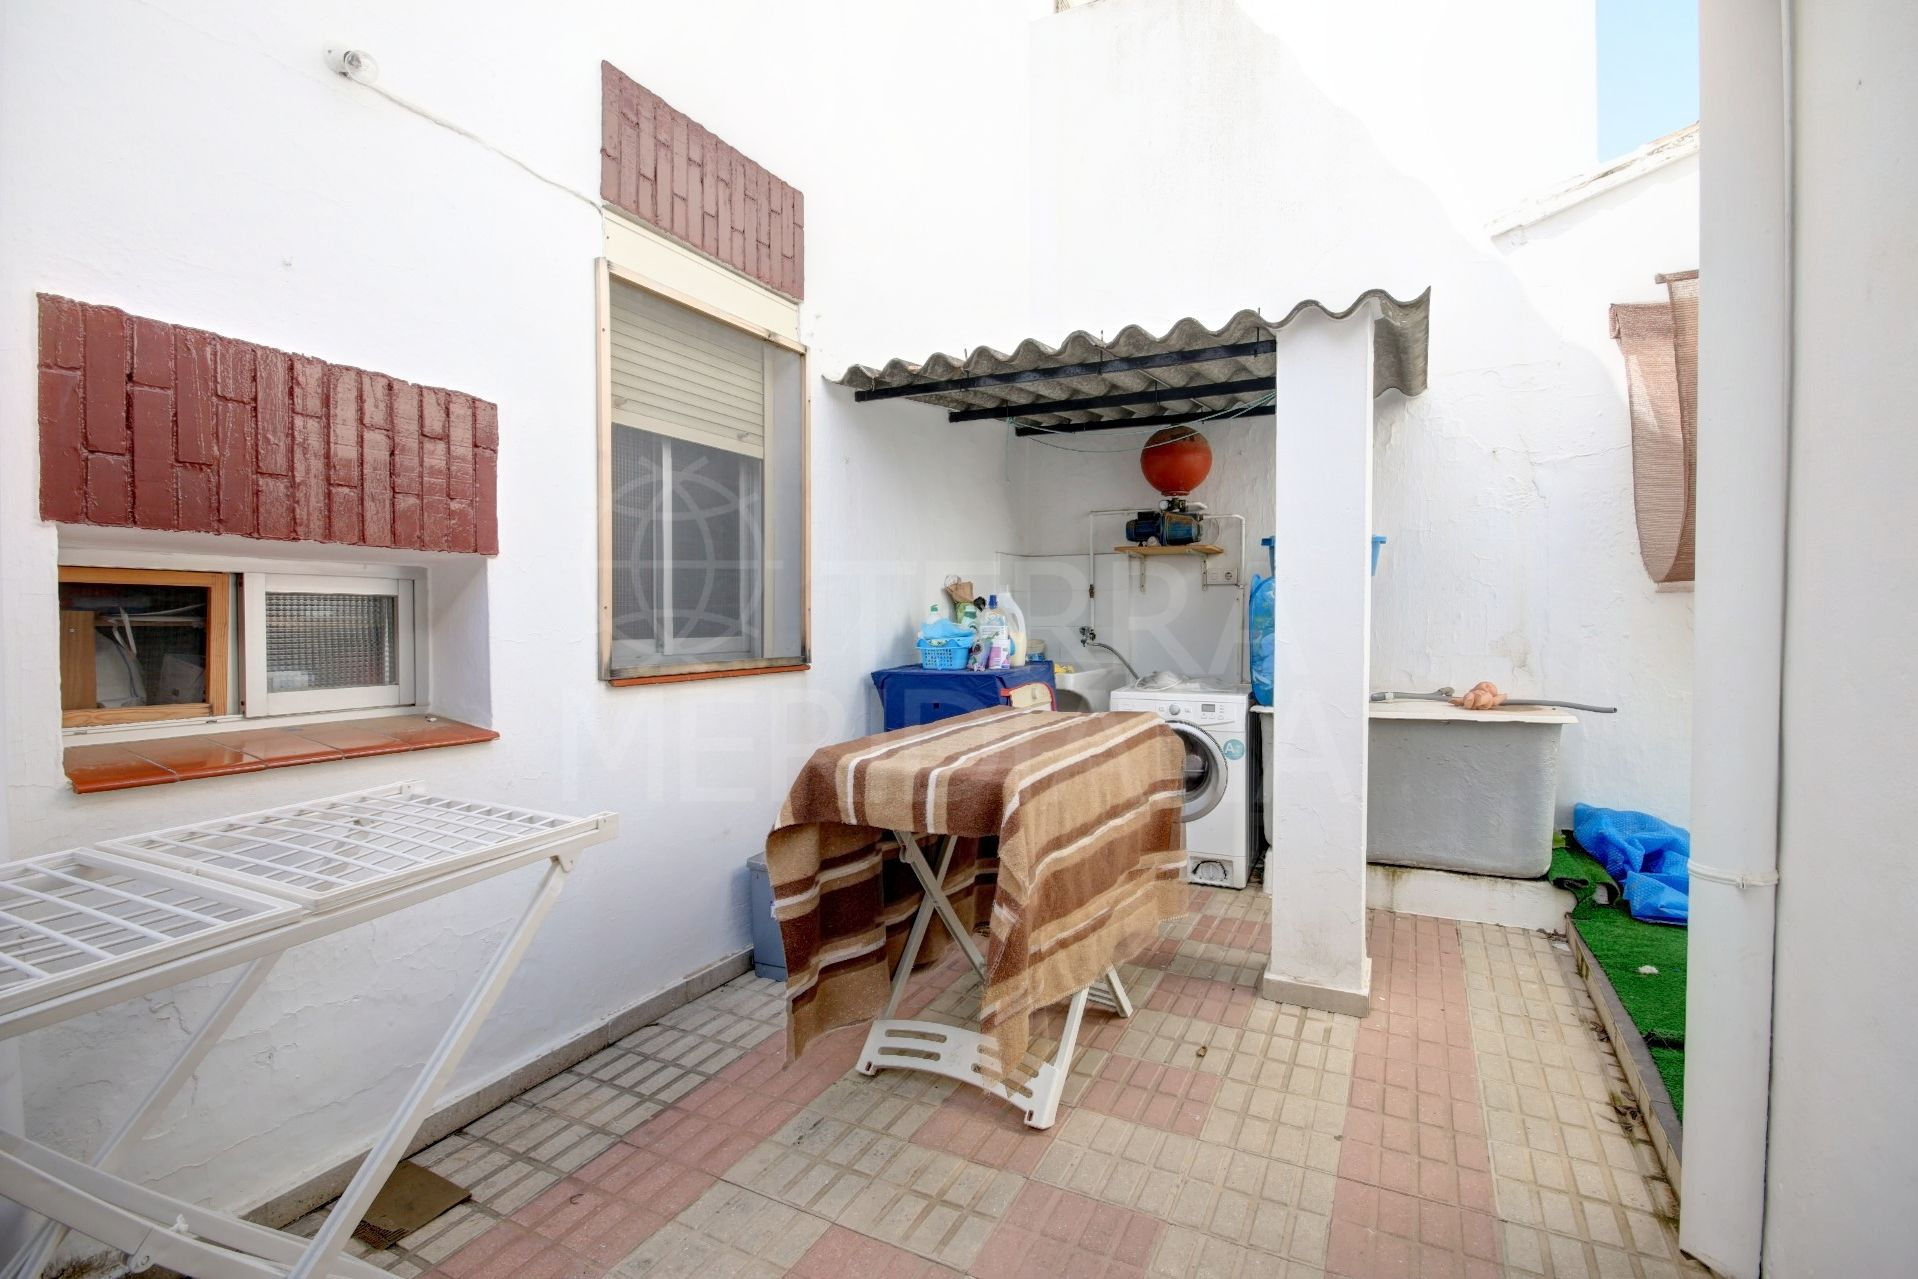 Townhouse for sale in Estepona town, within walking distance of all amenities